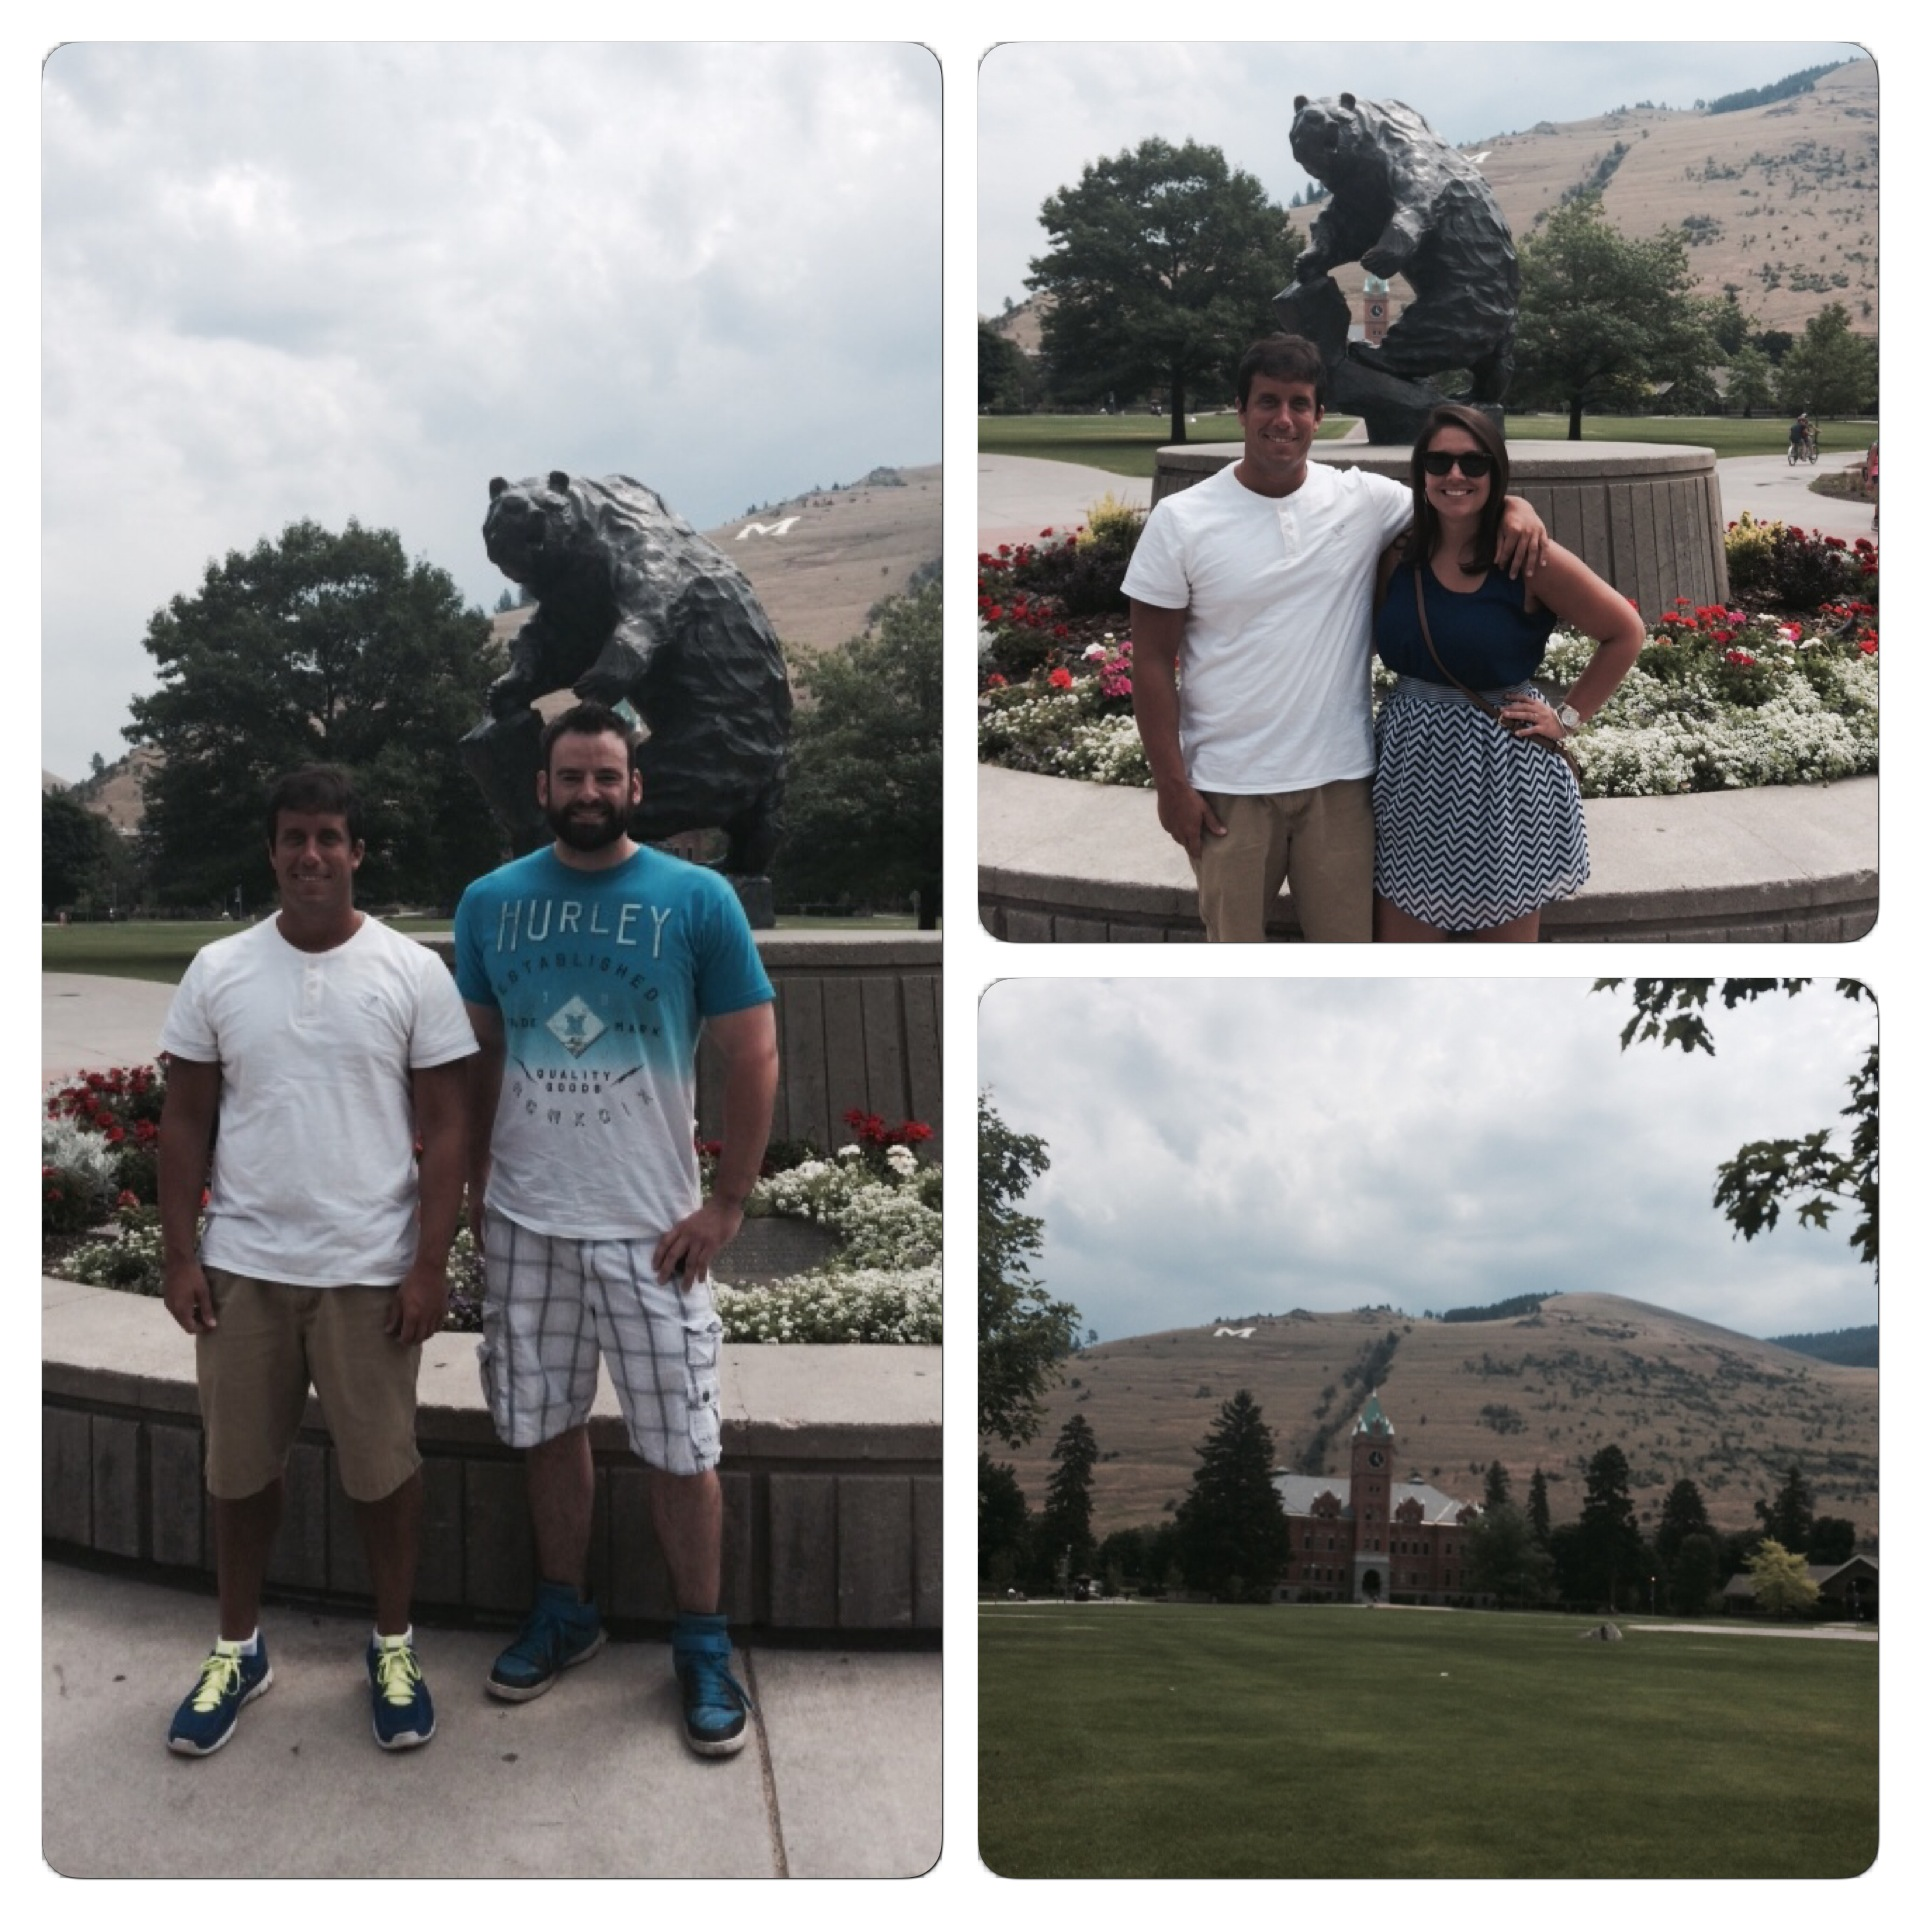 We enjoyed walking around the beautiful University of Montana campus.